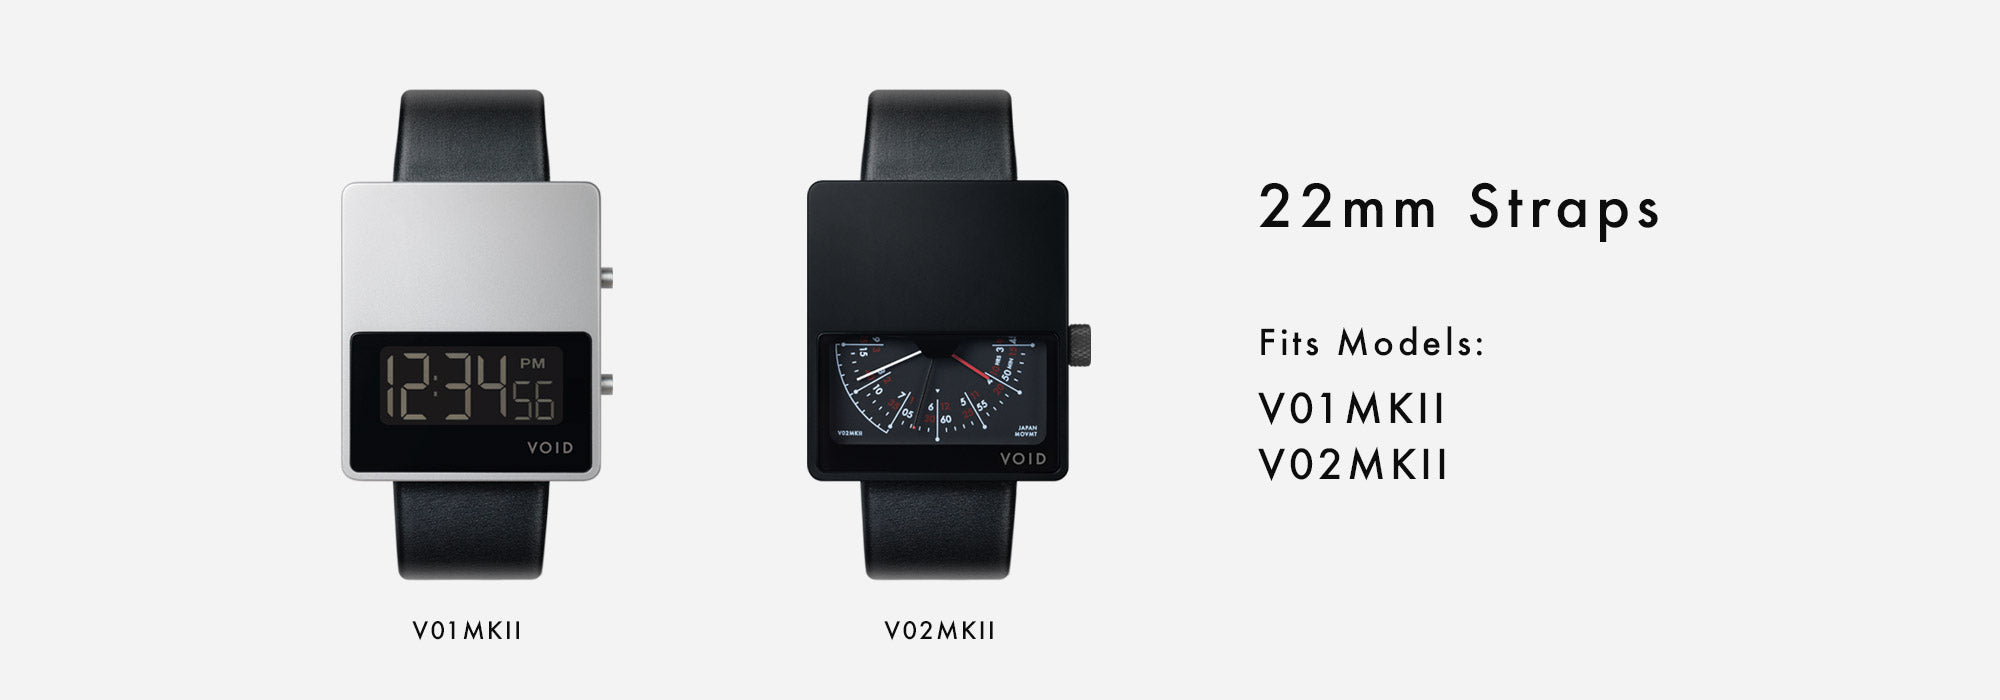 VOID Watches 22mm Straps - Fits the V01MKII and V02MKII